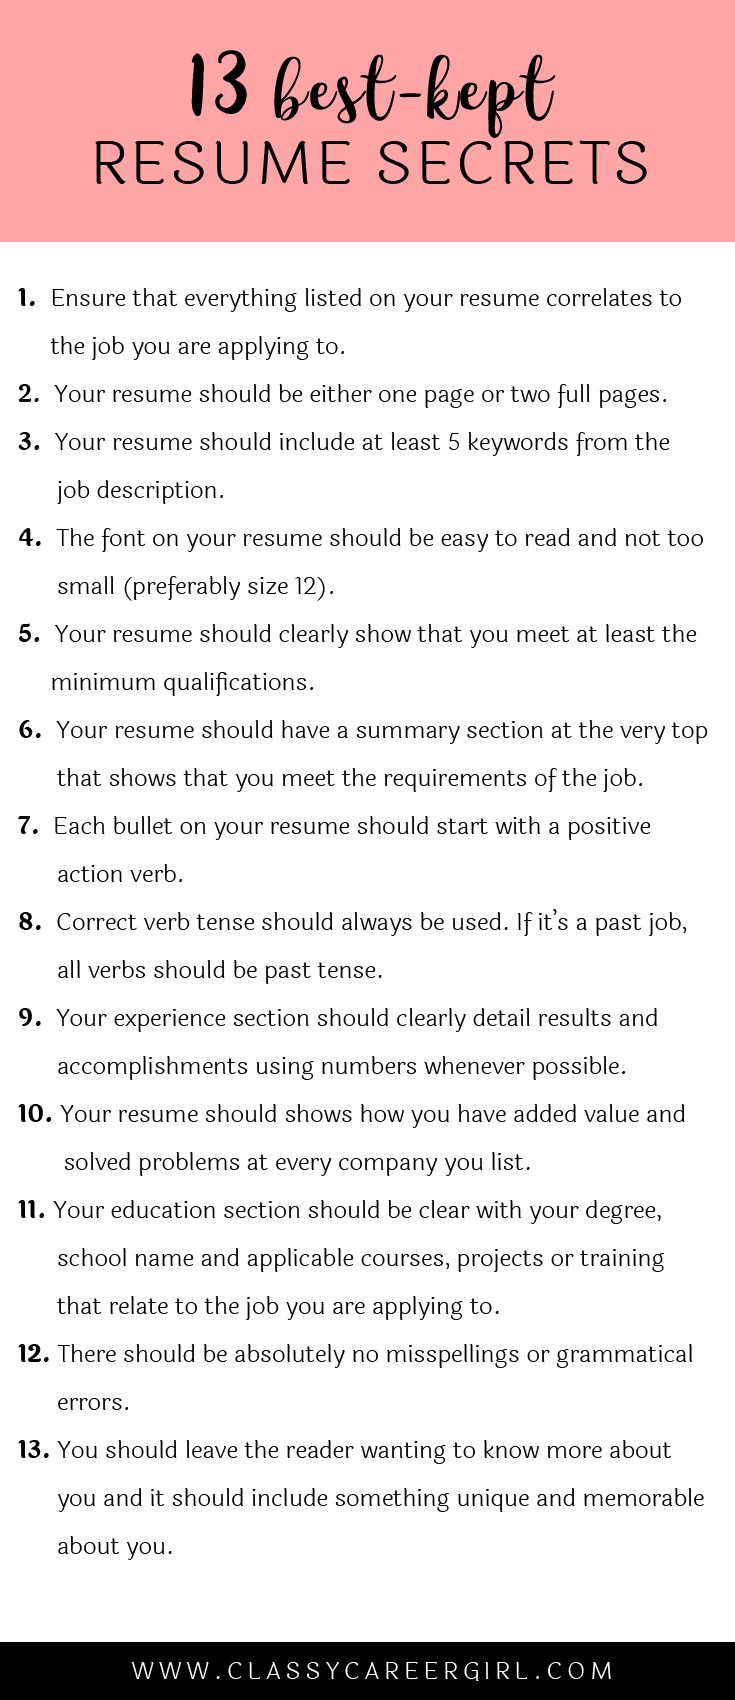 Opposenewapstandardsus  Ravishing  Ideas About Resume On Pinterest  Cv Format Resume Cv And  With Engaging Some Hiring Managers Will Toss Your Resume Out If You Dont Know These  With Cute Executive Resume Format Also How To Do A Resume On Microsoft Word In Addition Factory Worker Resume And Sales Experience Resume As Well As Resume Work Experience Examples Additionally Film Resume Template From Pinterestcom With Opposenewapstandardsus  Engaging  Ideas About Resume On Pinterest  Cv Format Resume Cv And  With Cute Some Hiring Managers Will Toss Your Resume Out If You Dont Know These  And Ravishing Executive Resume Format Also How To Do A Resume On Microsoft Word In Addition Factory Worker Resume From Pinterestcom